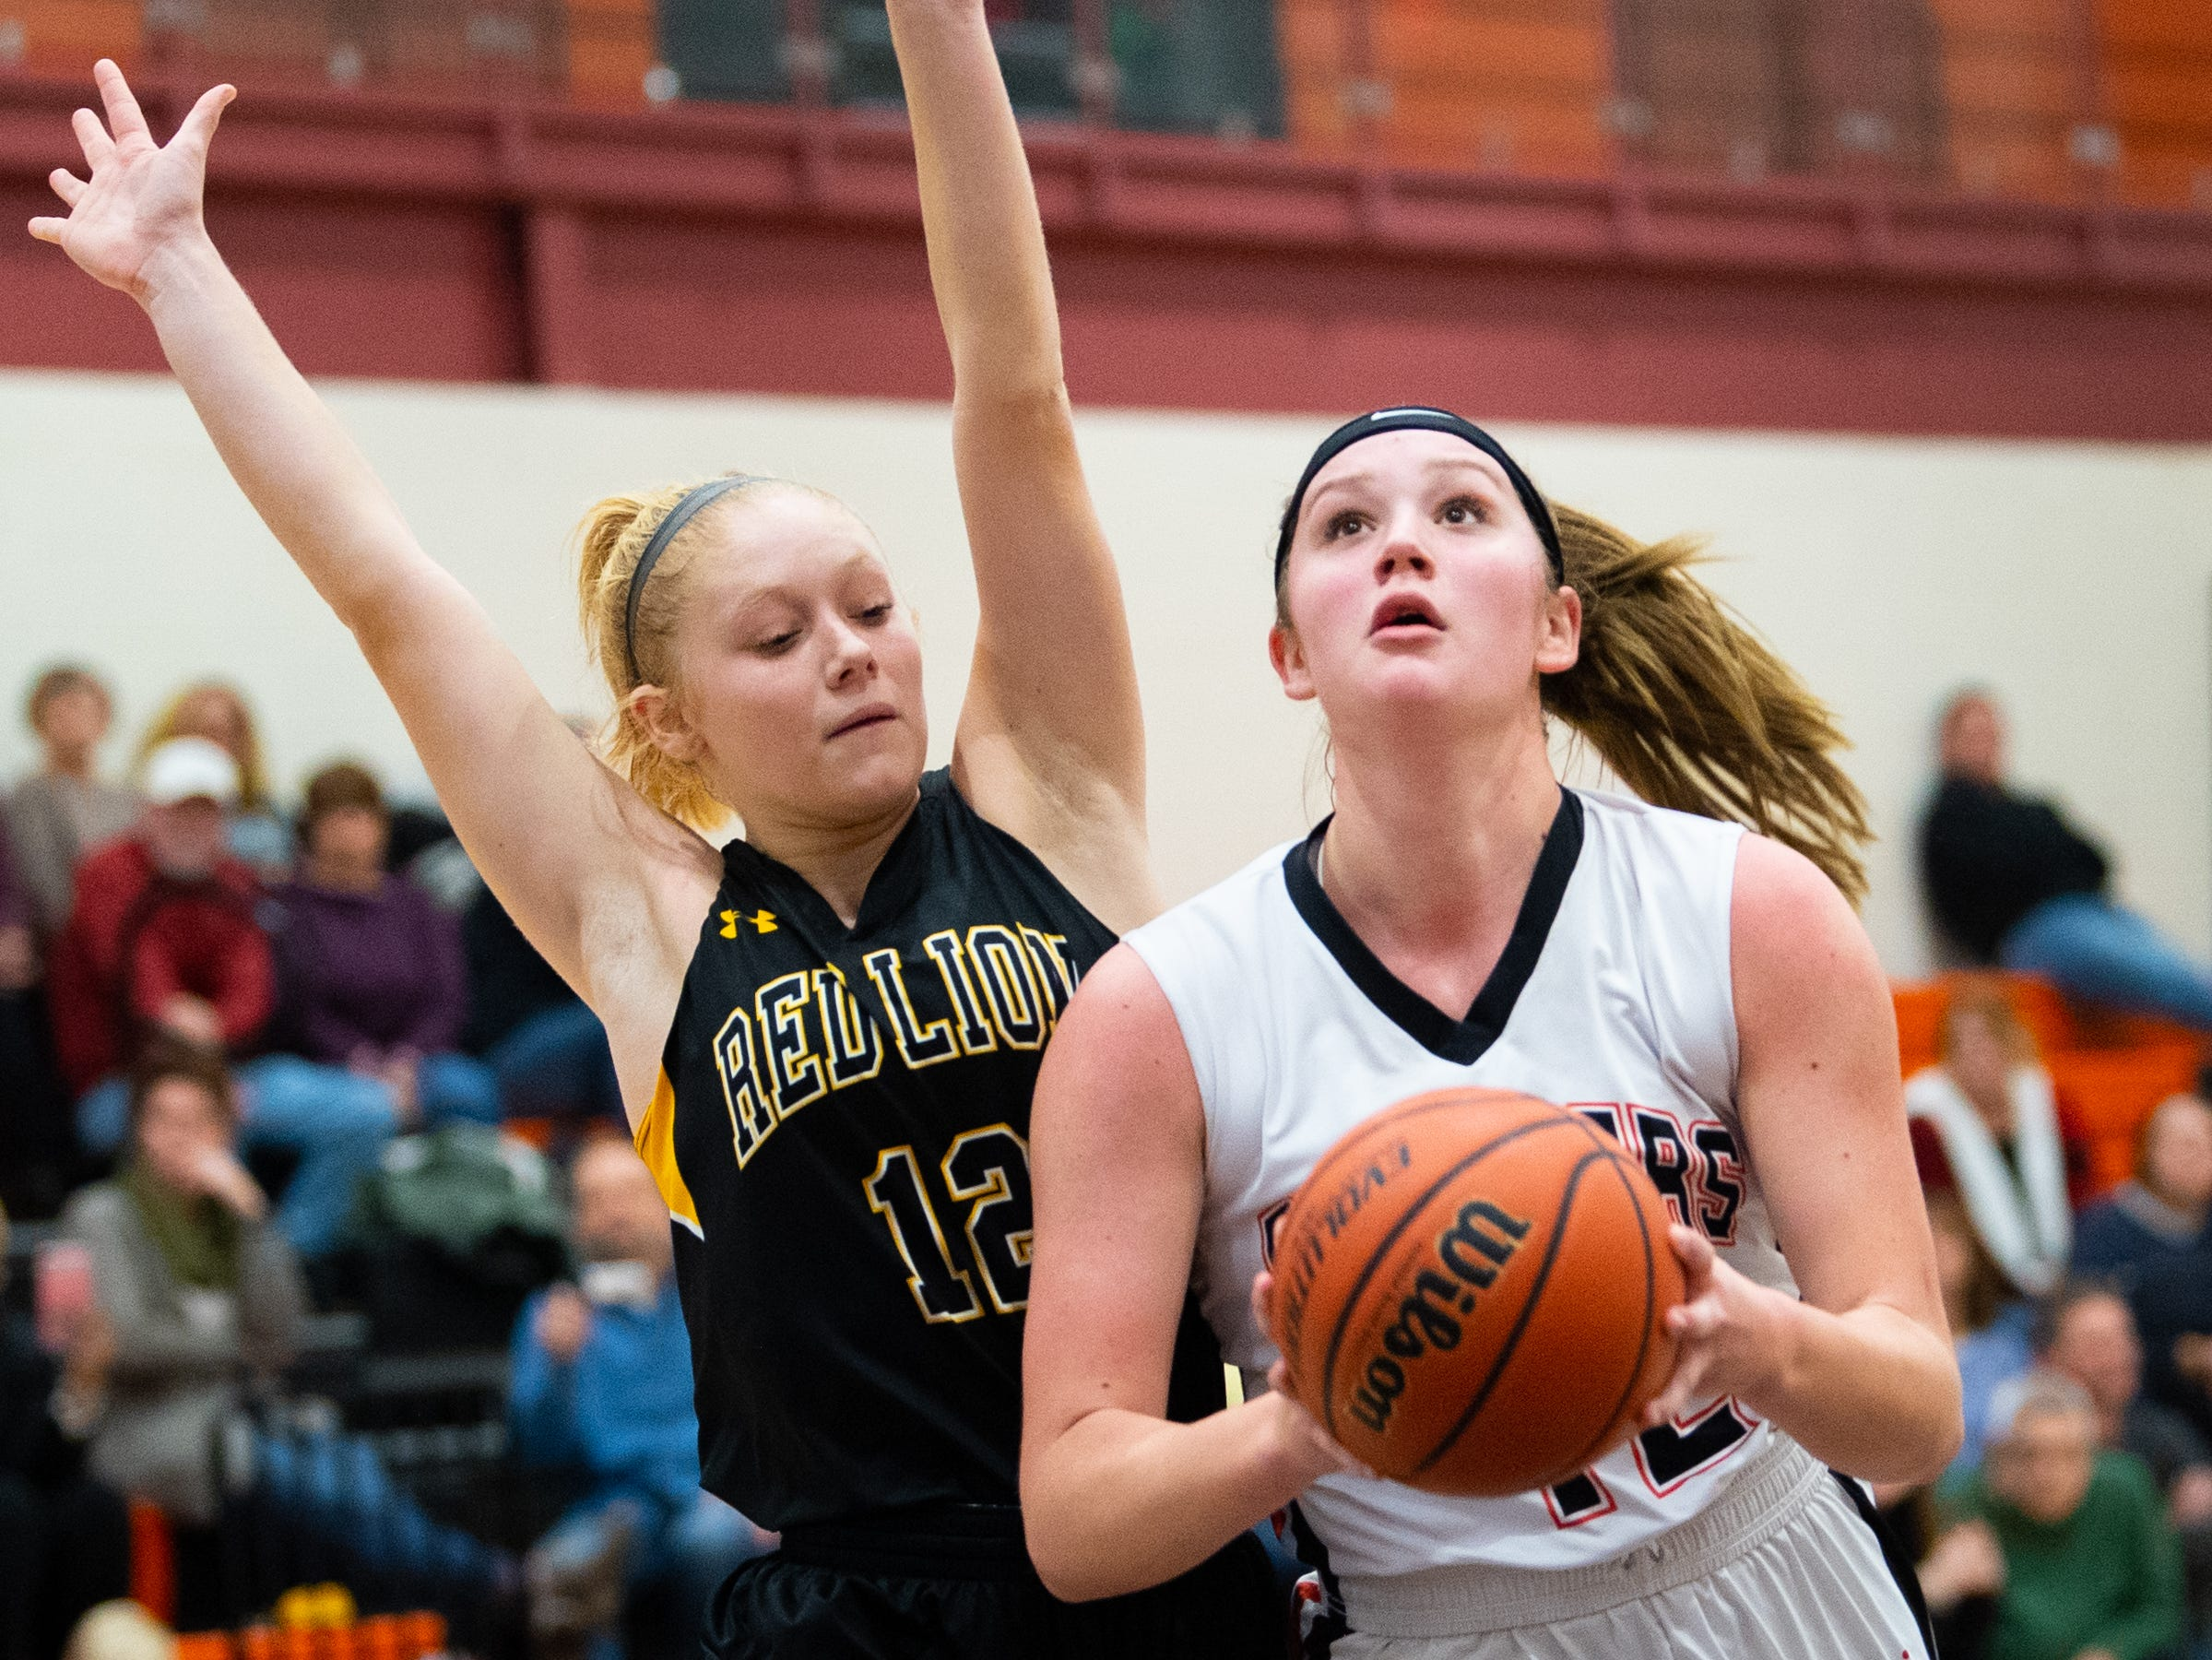 Emily Prowell (42) looks to score during the girls' basketball game between Central York and Red Lion at Central York, Tuesday, December 11, 2018. The Panthers defeated the Lions 40-38.